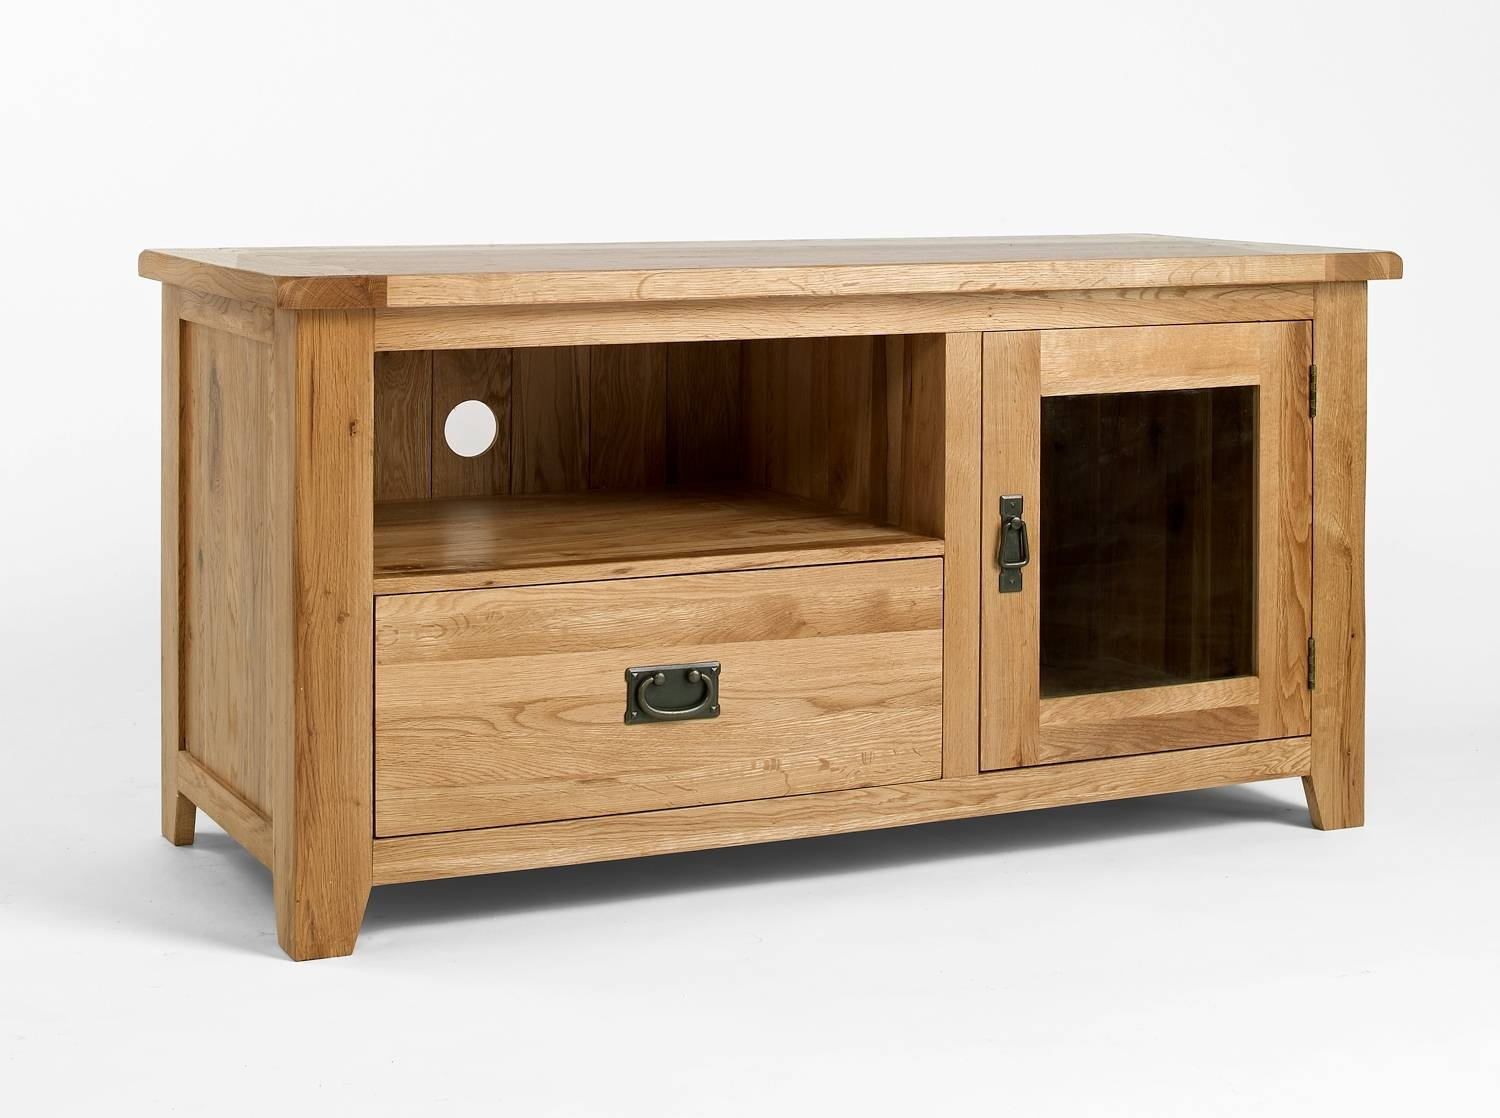 15 Inspirations Of Oak Tv Cabinets With Doors